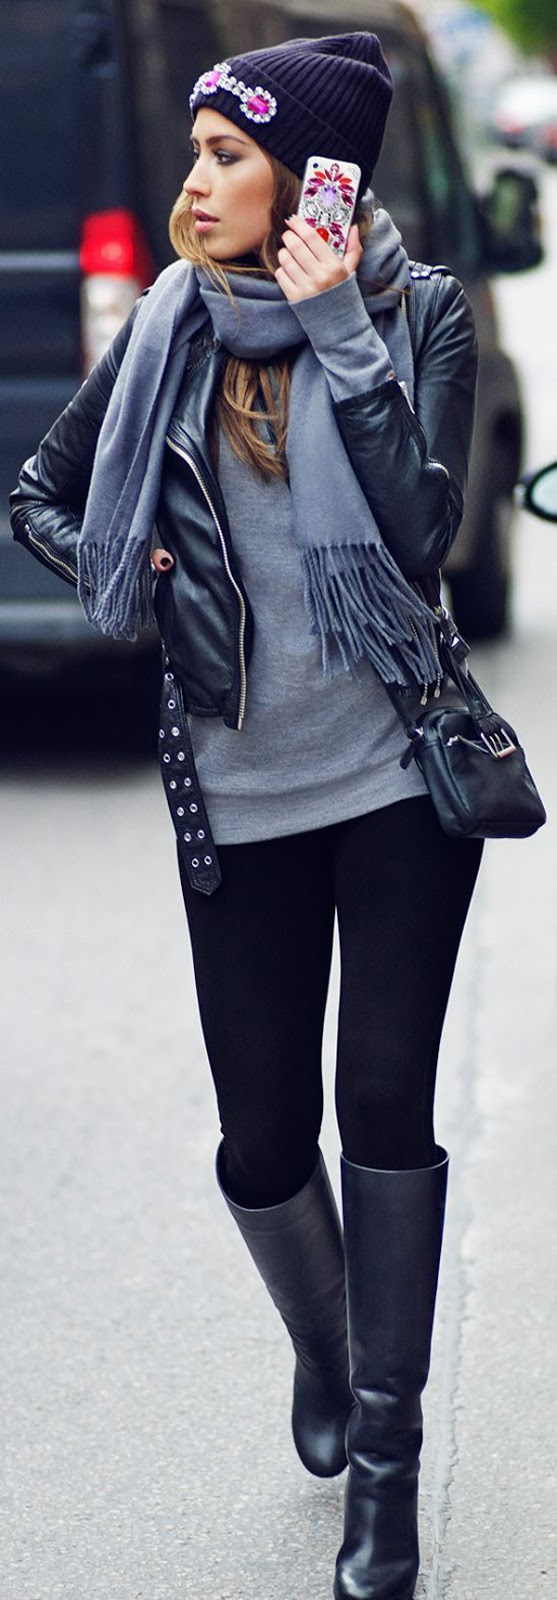 Winter Outfits On The Street